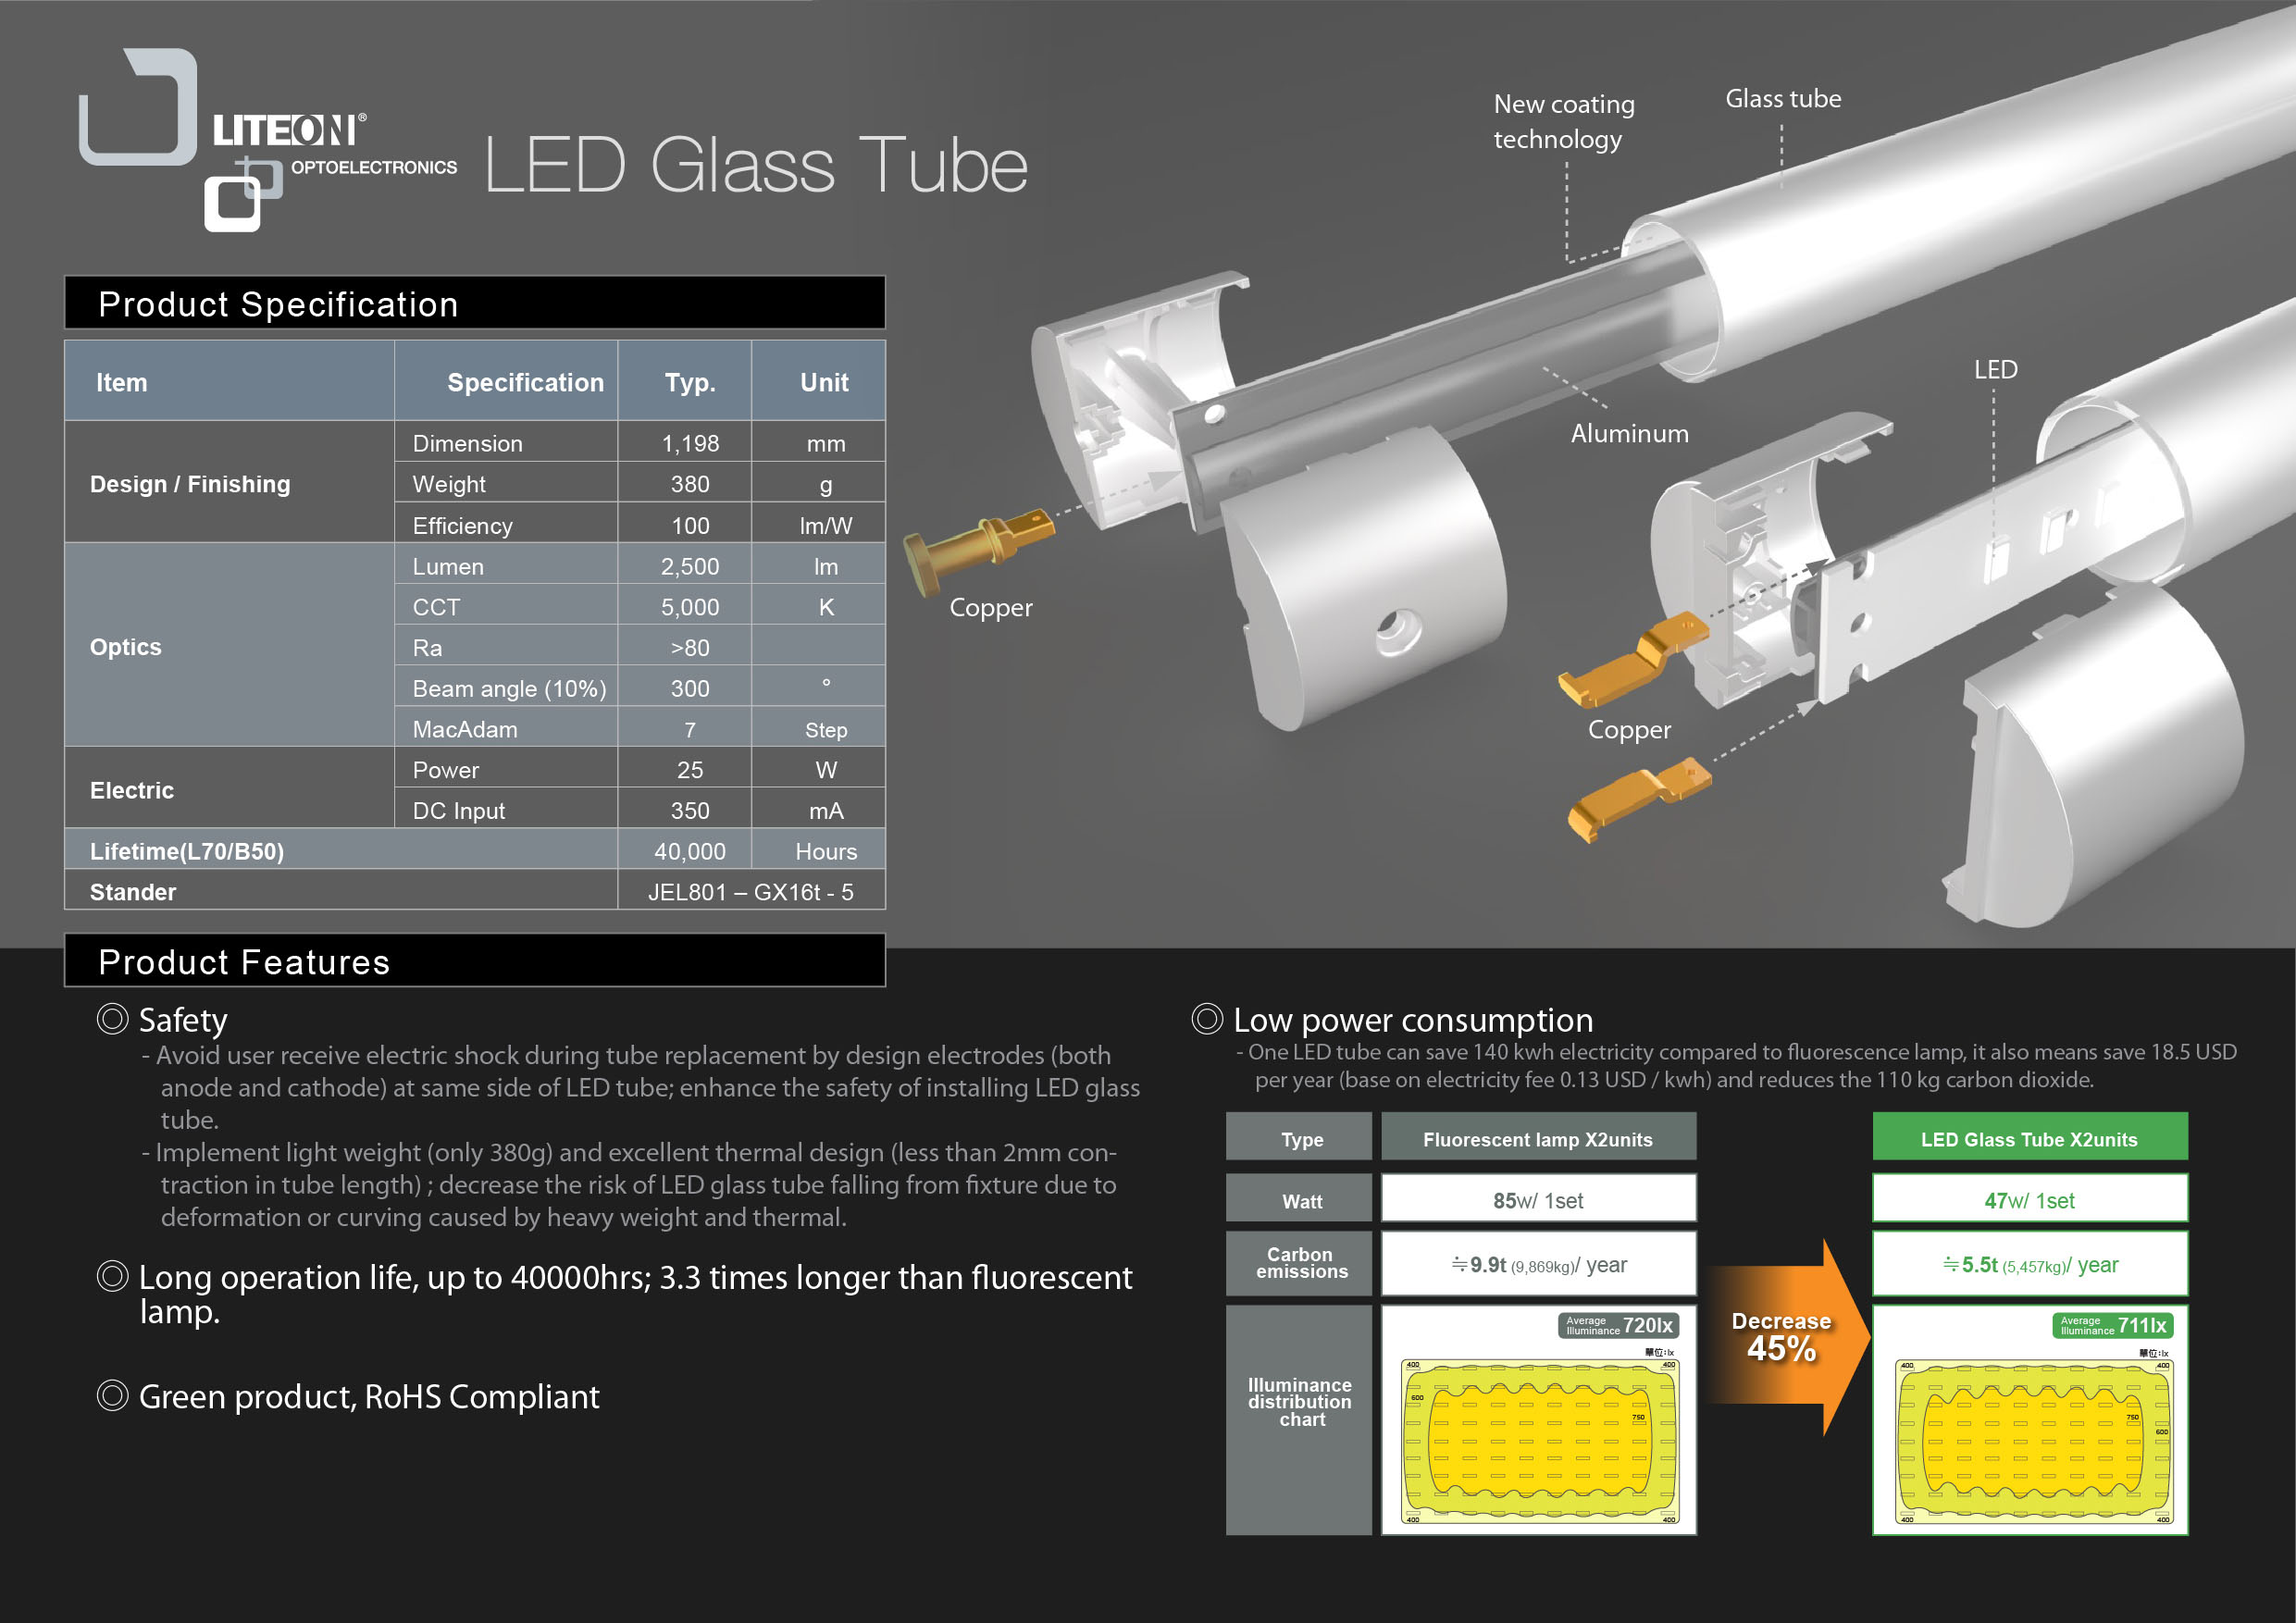 LED Glass Tube